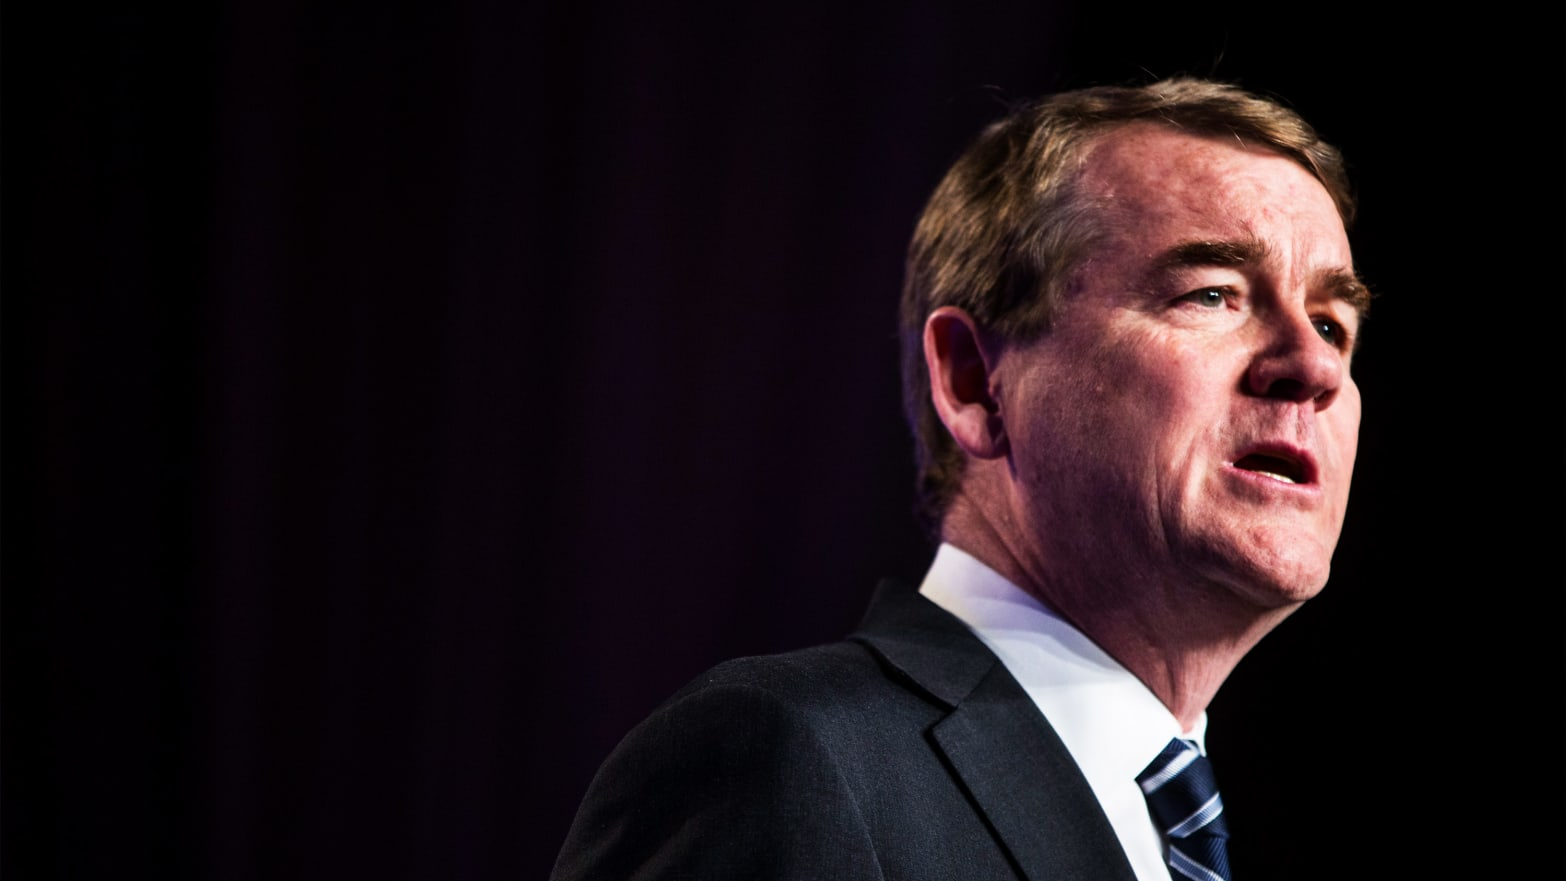 Michael Bennet Understands Exactly What's Gone Wrong in America